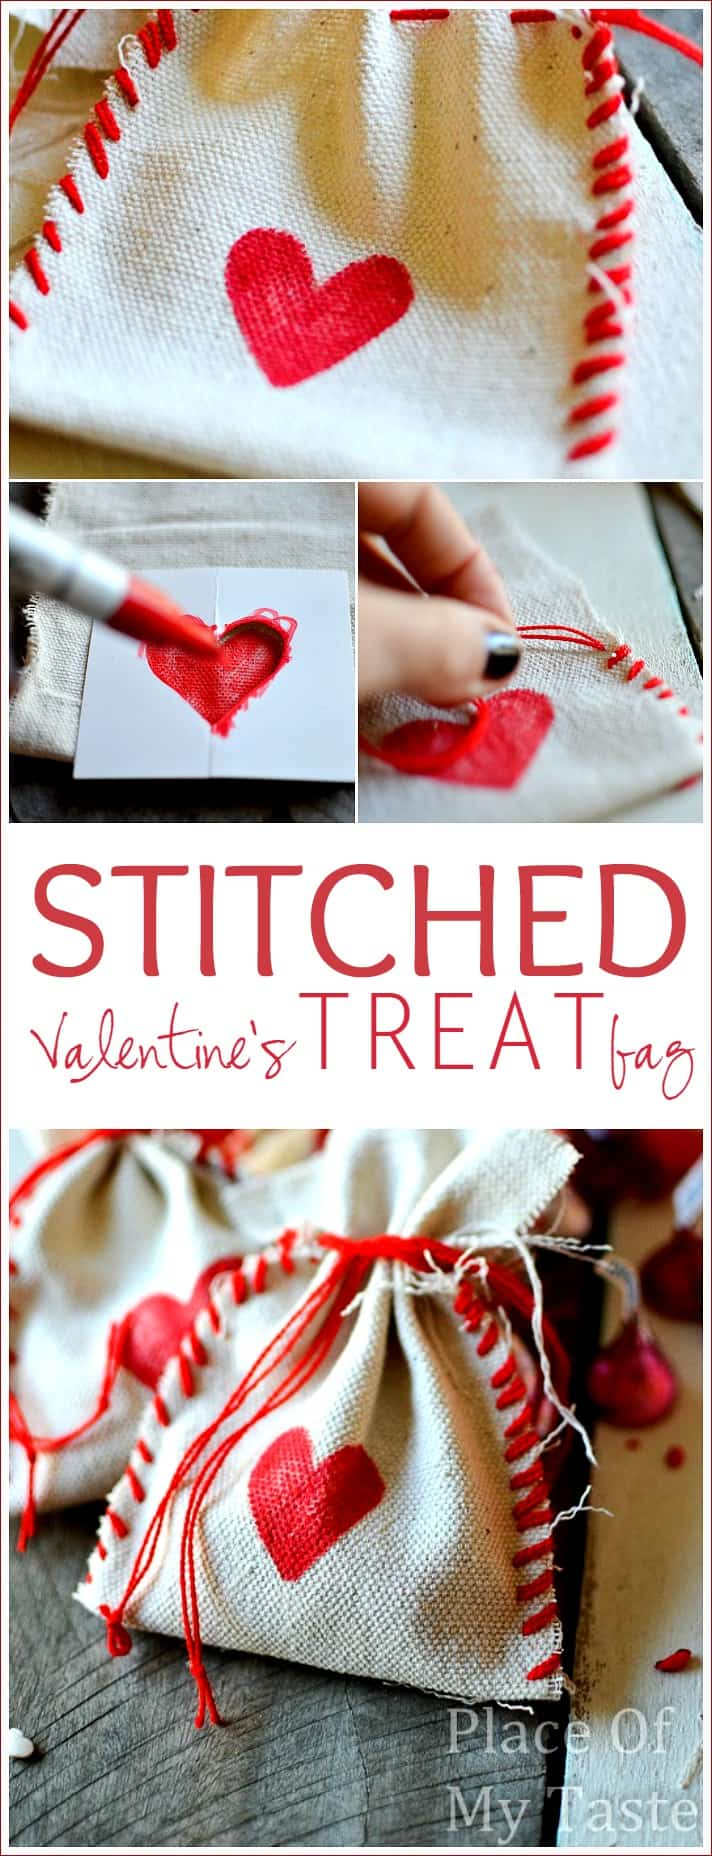 stitched valentines treat bags- Placeofmytaste.com DIY bag